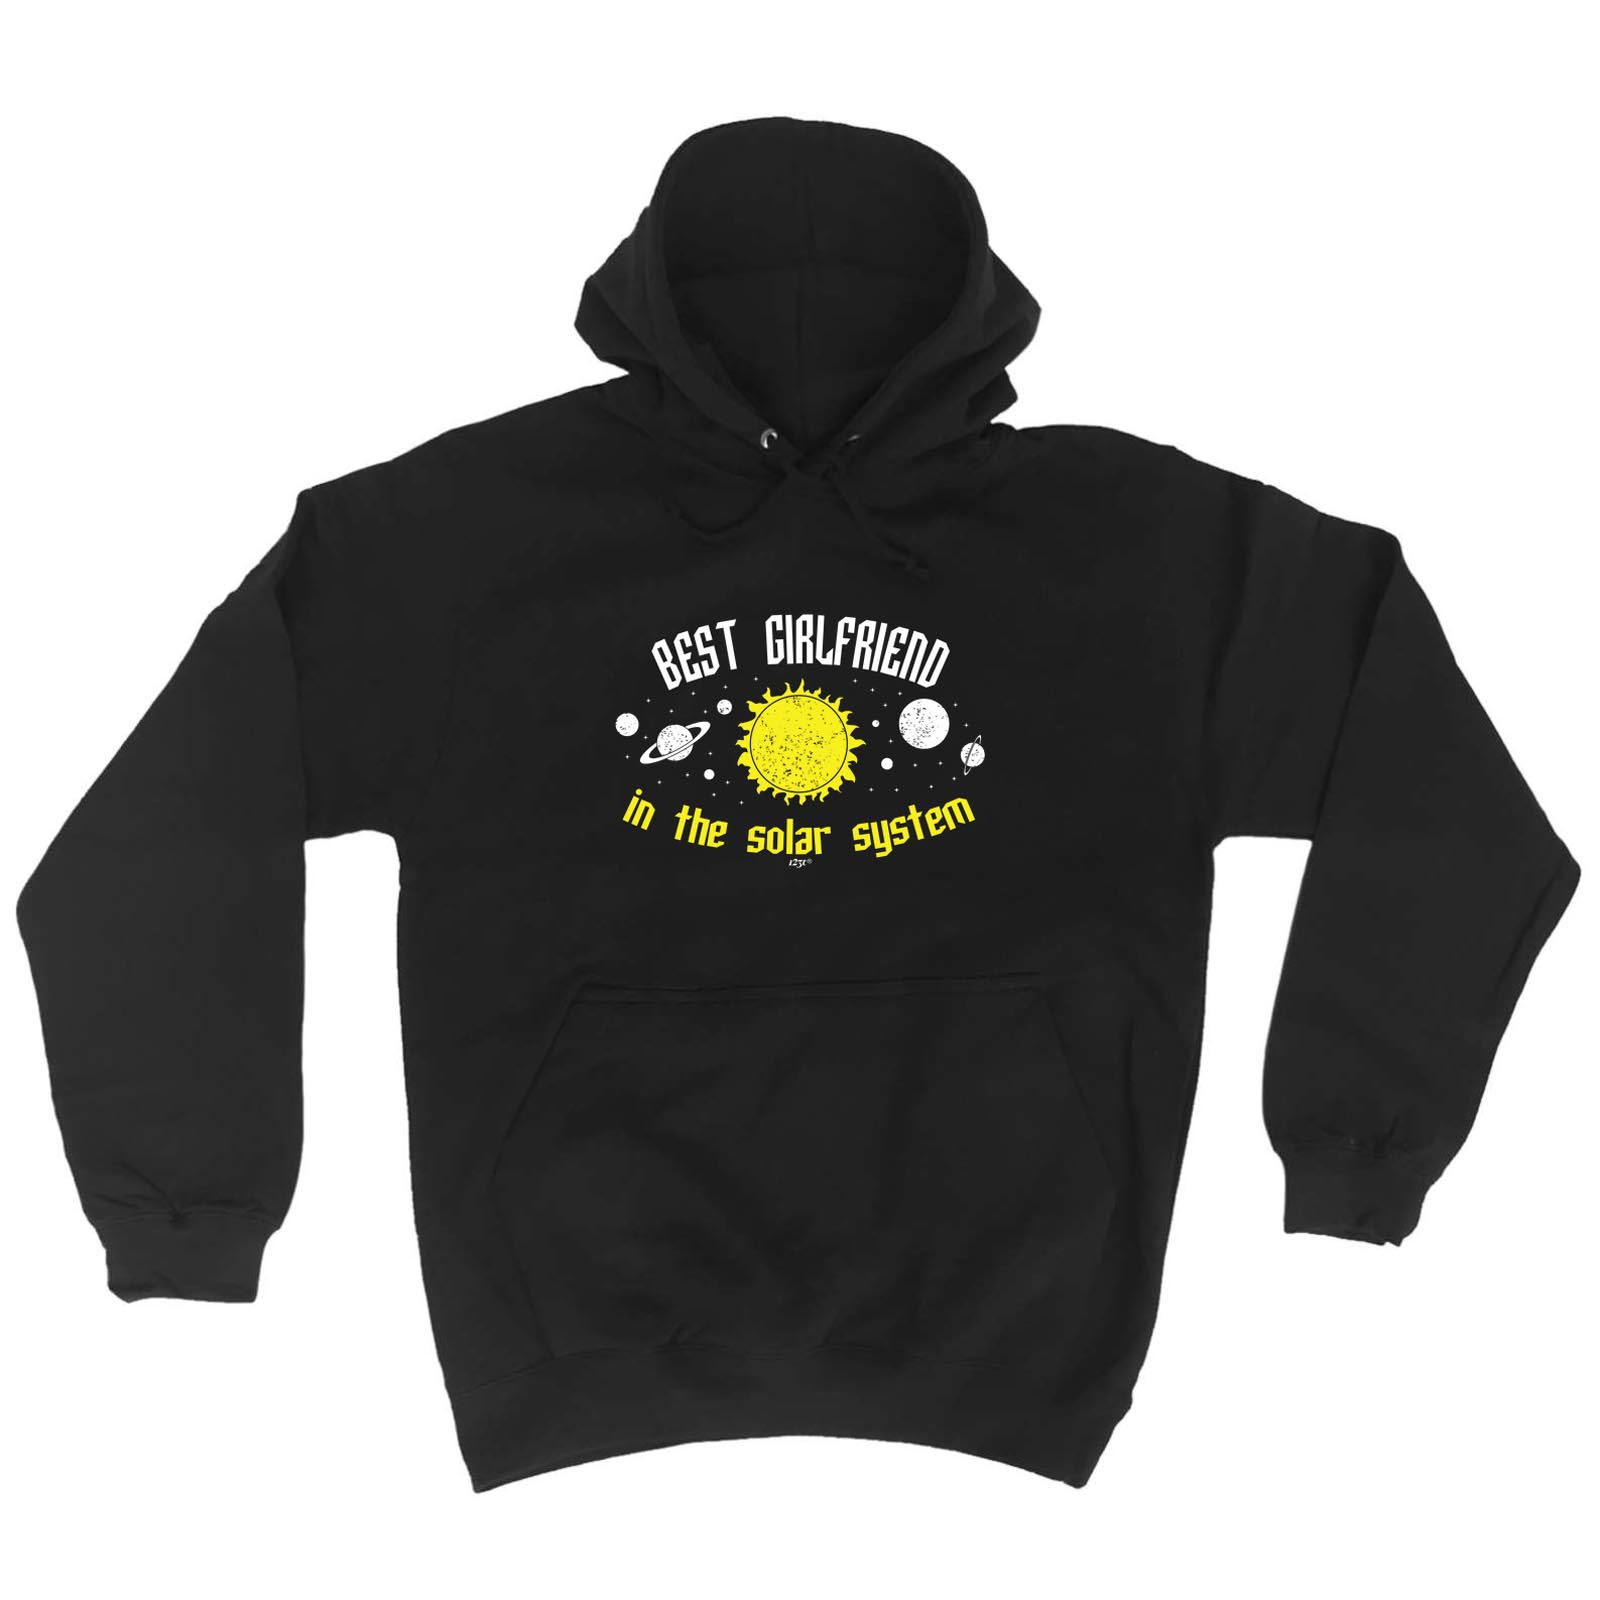 Best Girlfriend In The Solar System Funny Novelty Hoodie Hoody hooded Top